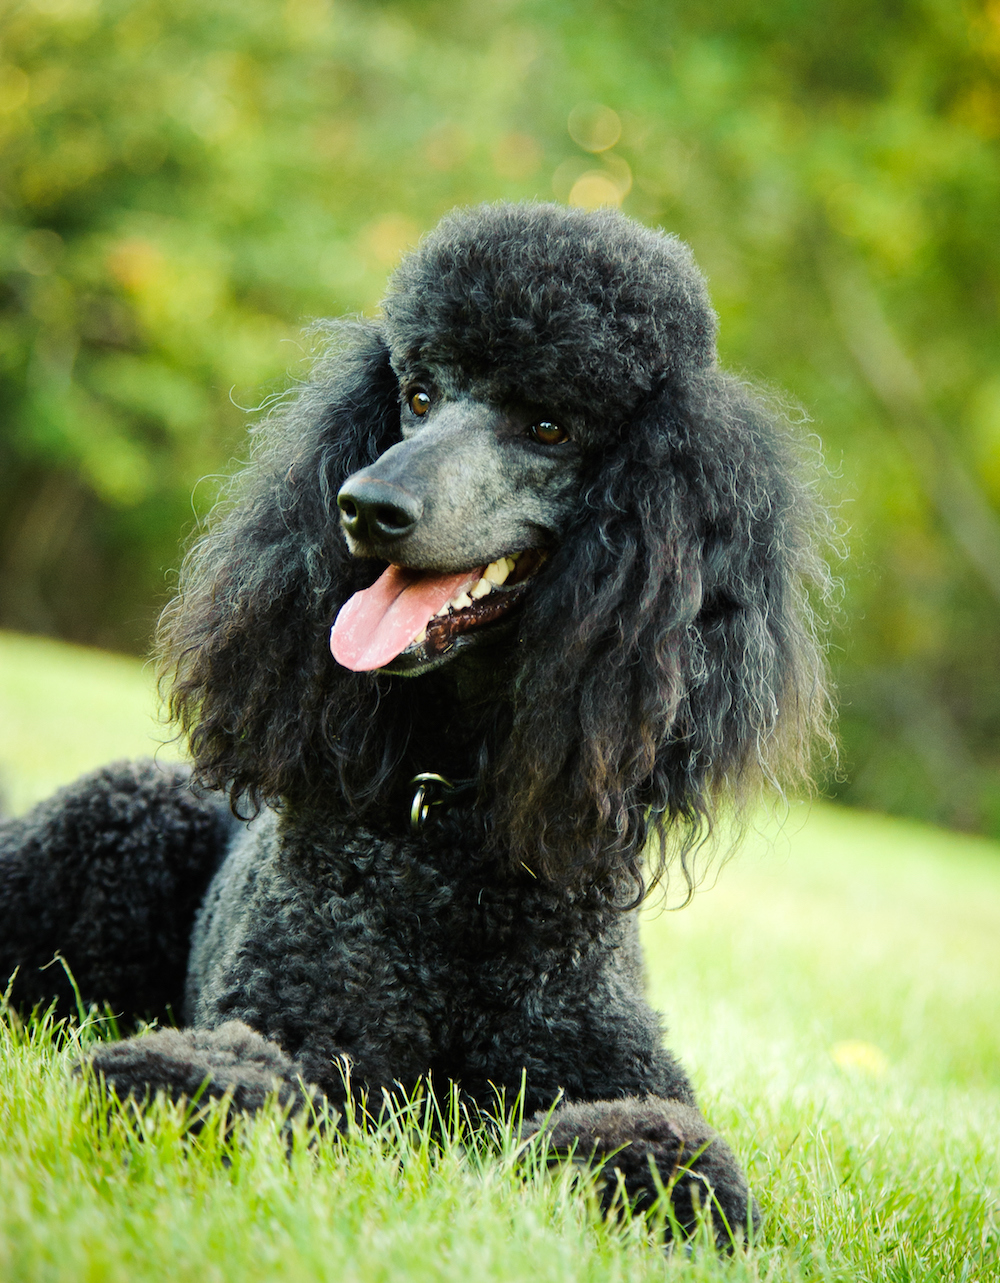 Black standard poodle sticking out tongue while resting on grassy field